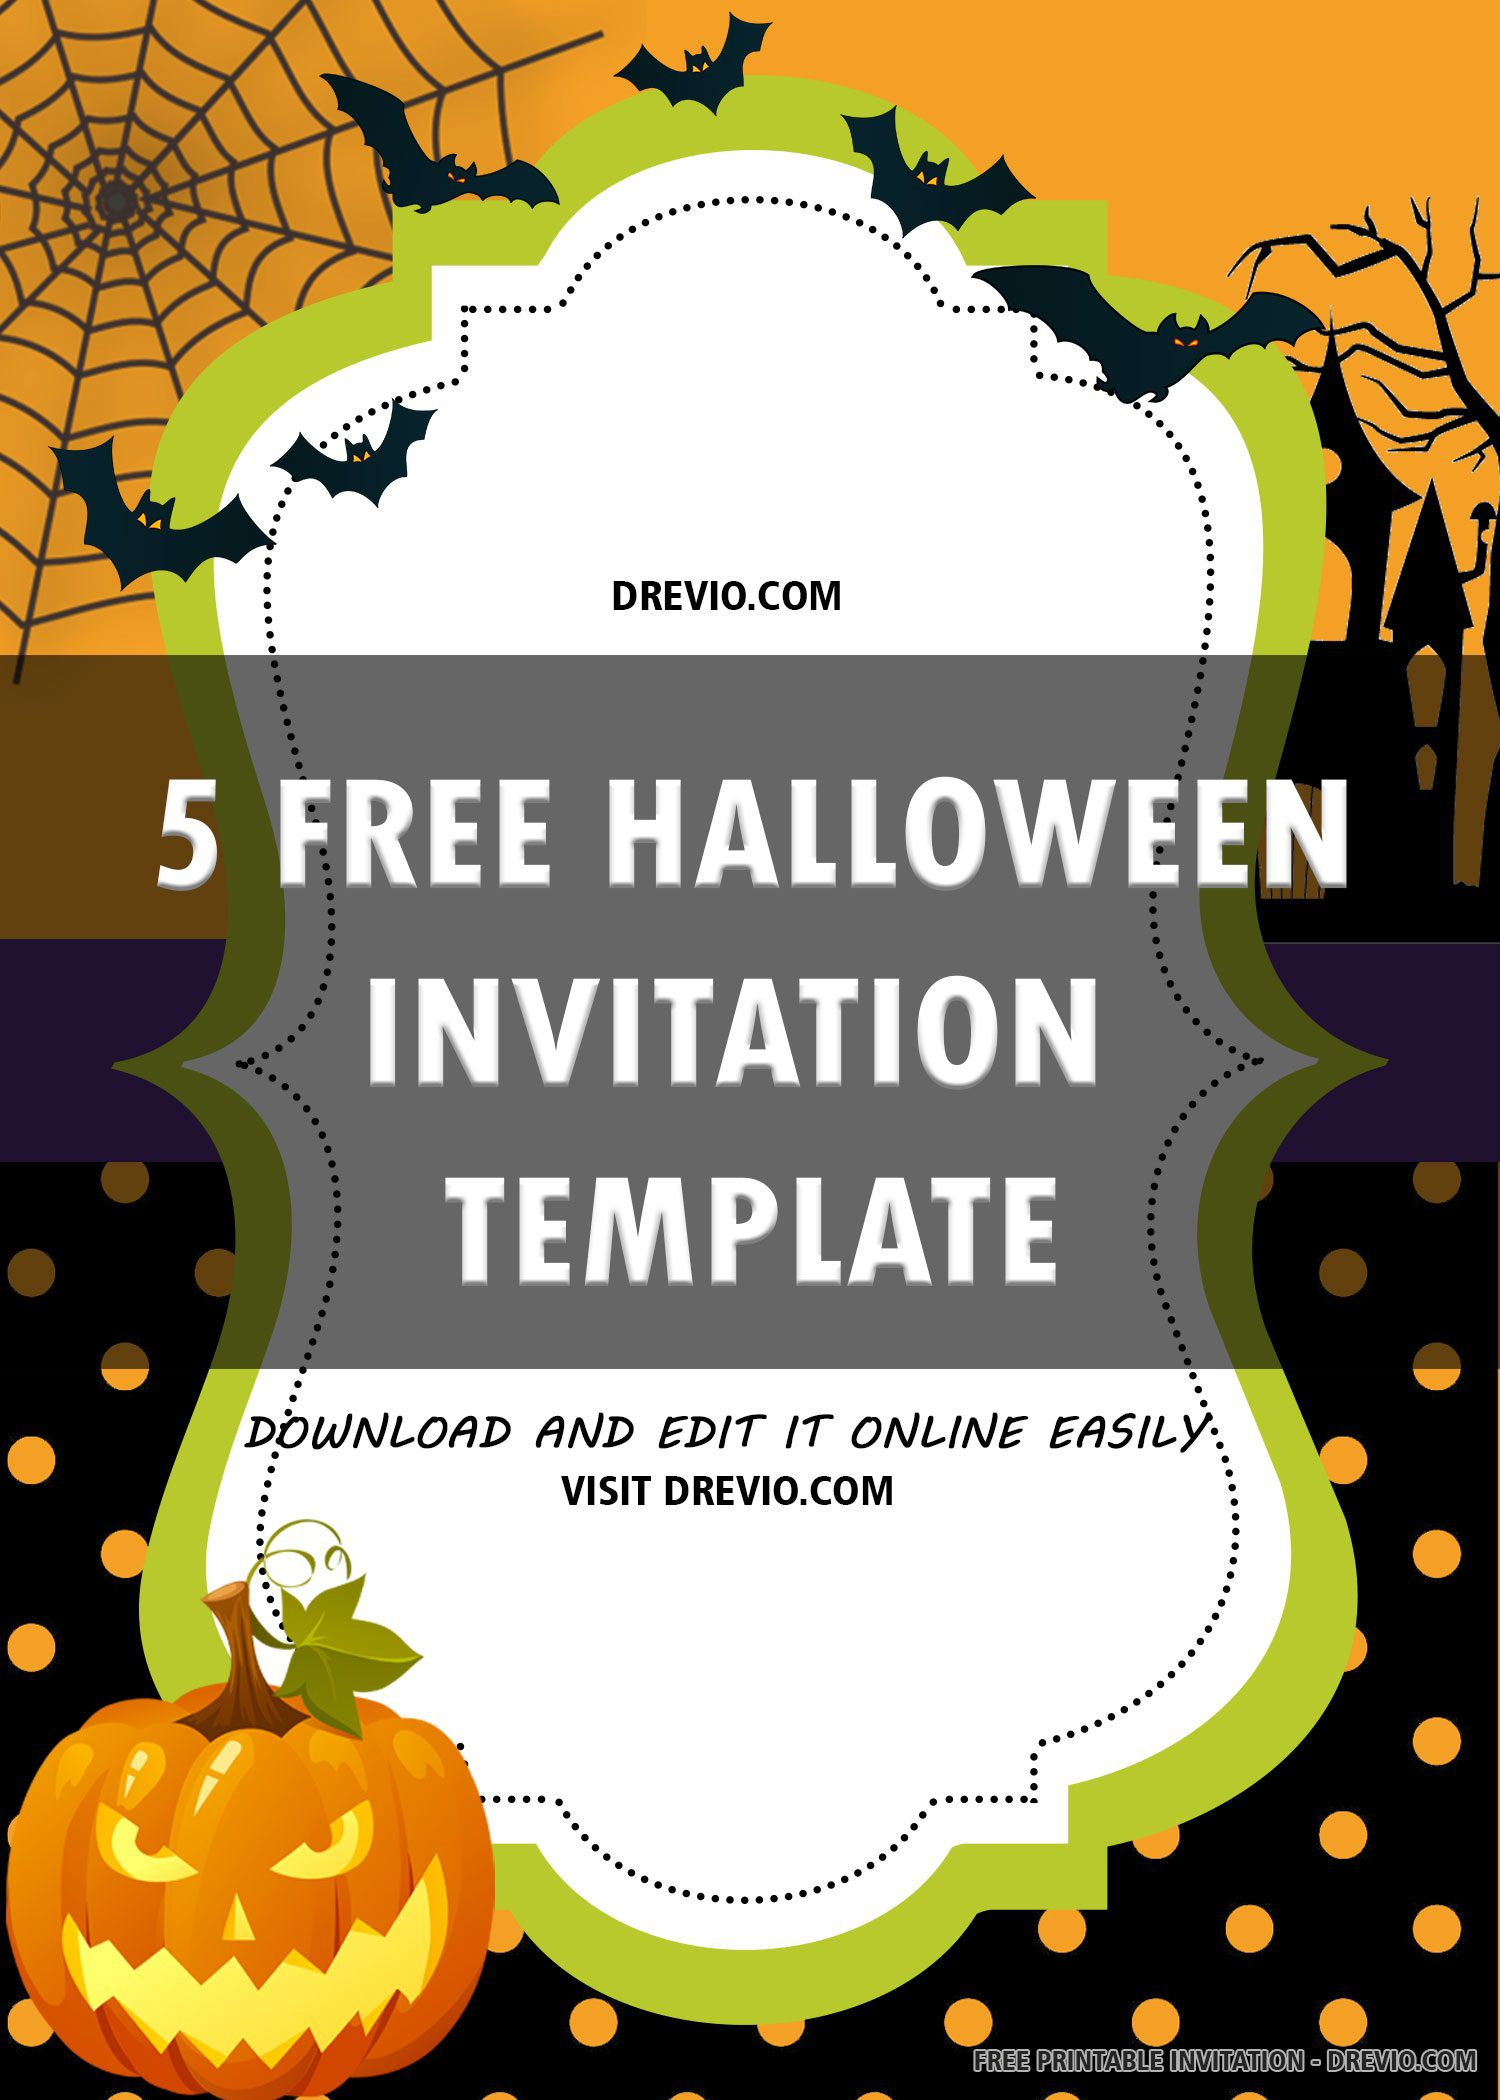 006 Excellent Halloween Party Invitation Template Concept  Templates Scary SpookyFull